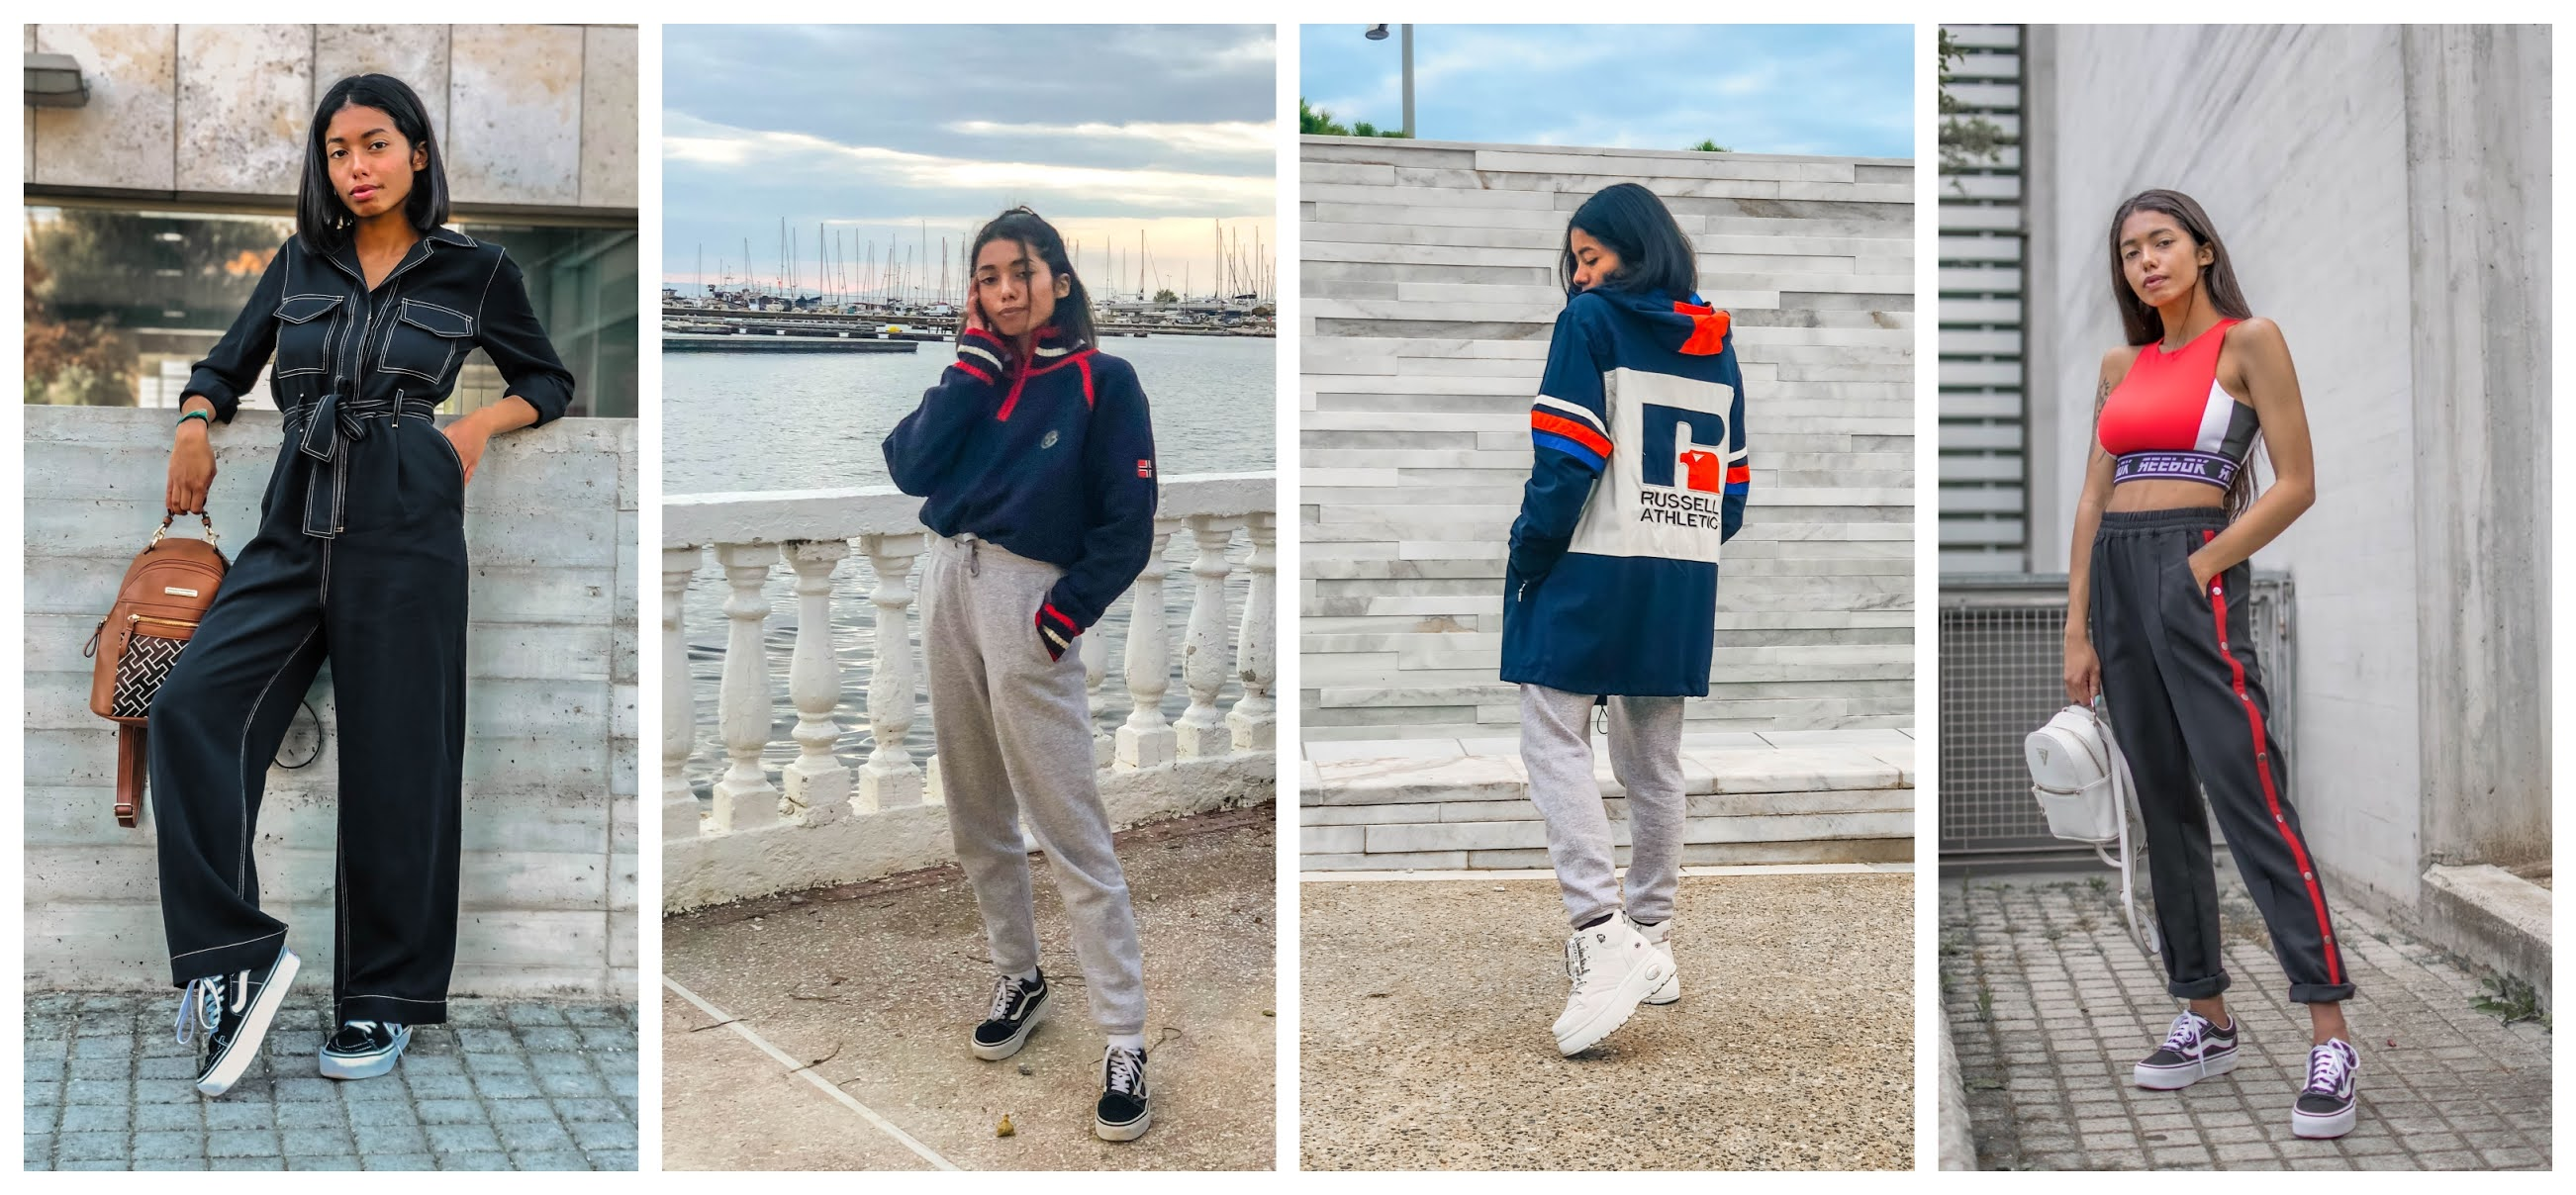 Streetstyle athleisure outfit inspiration